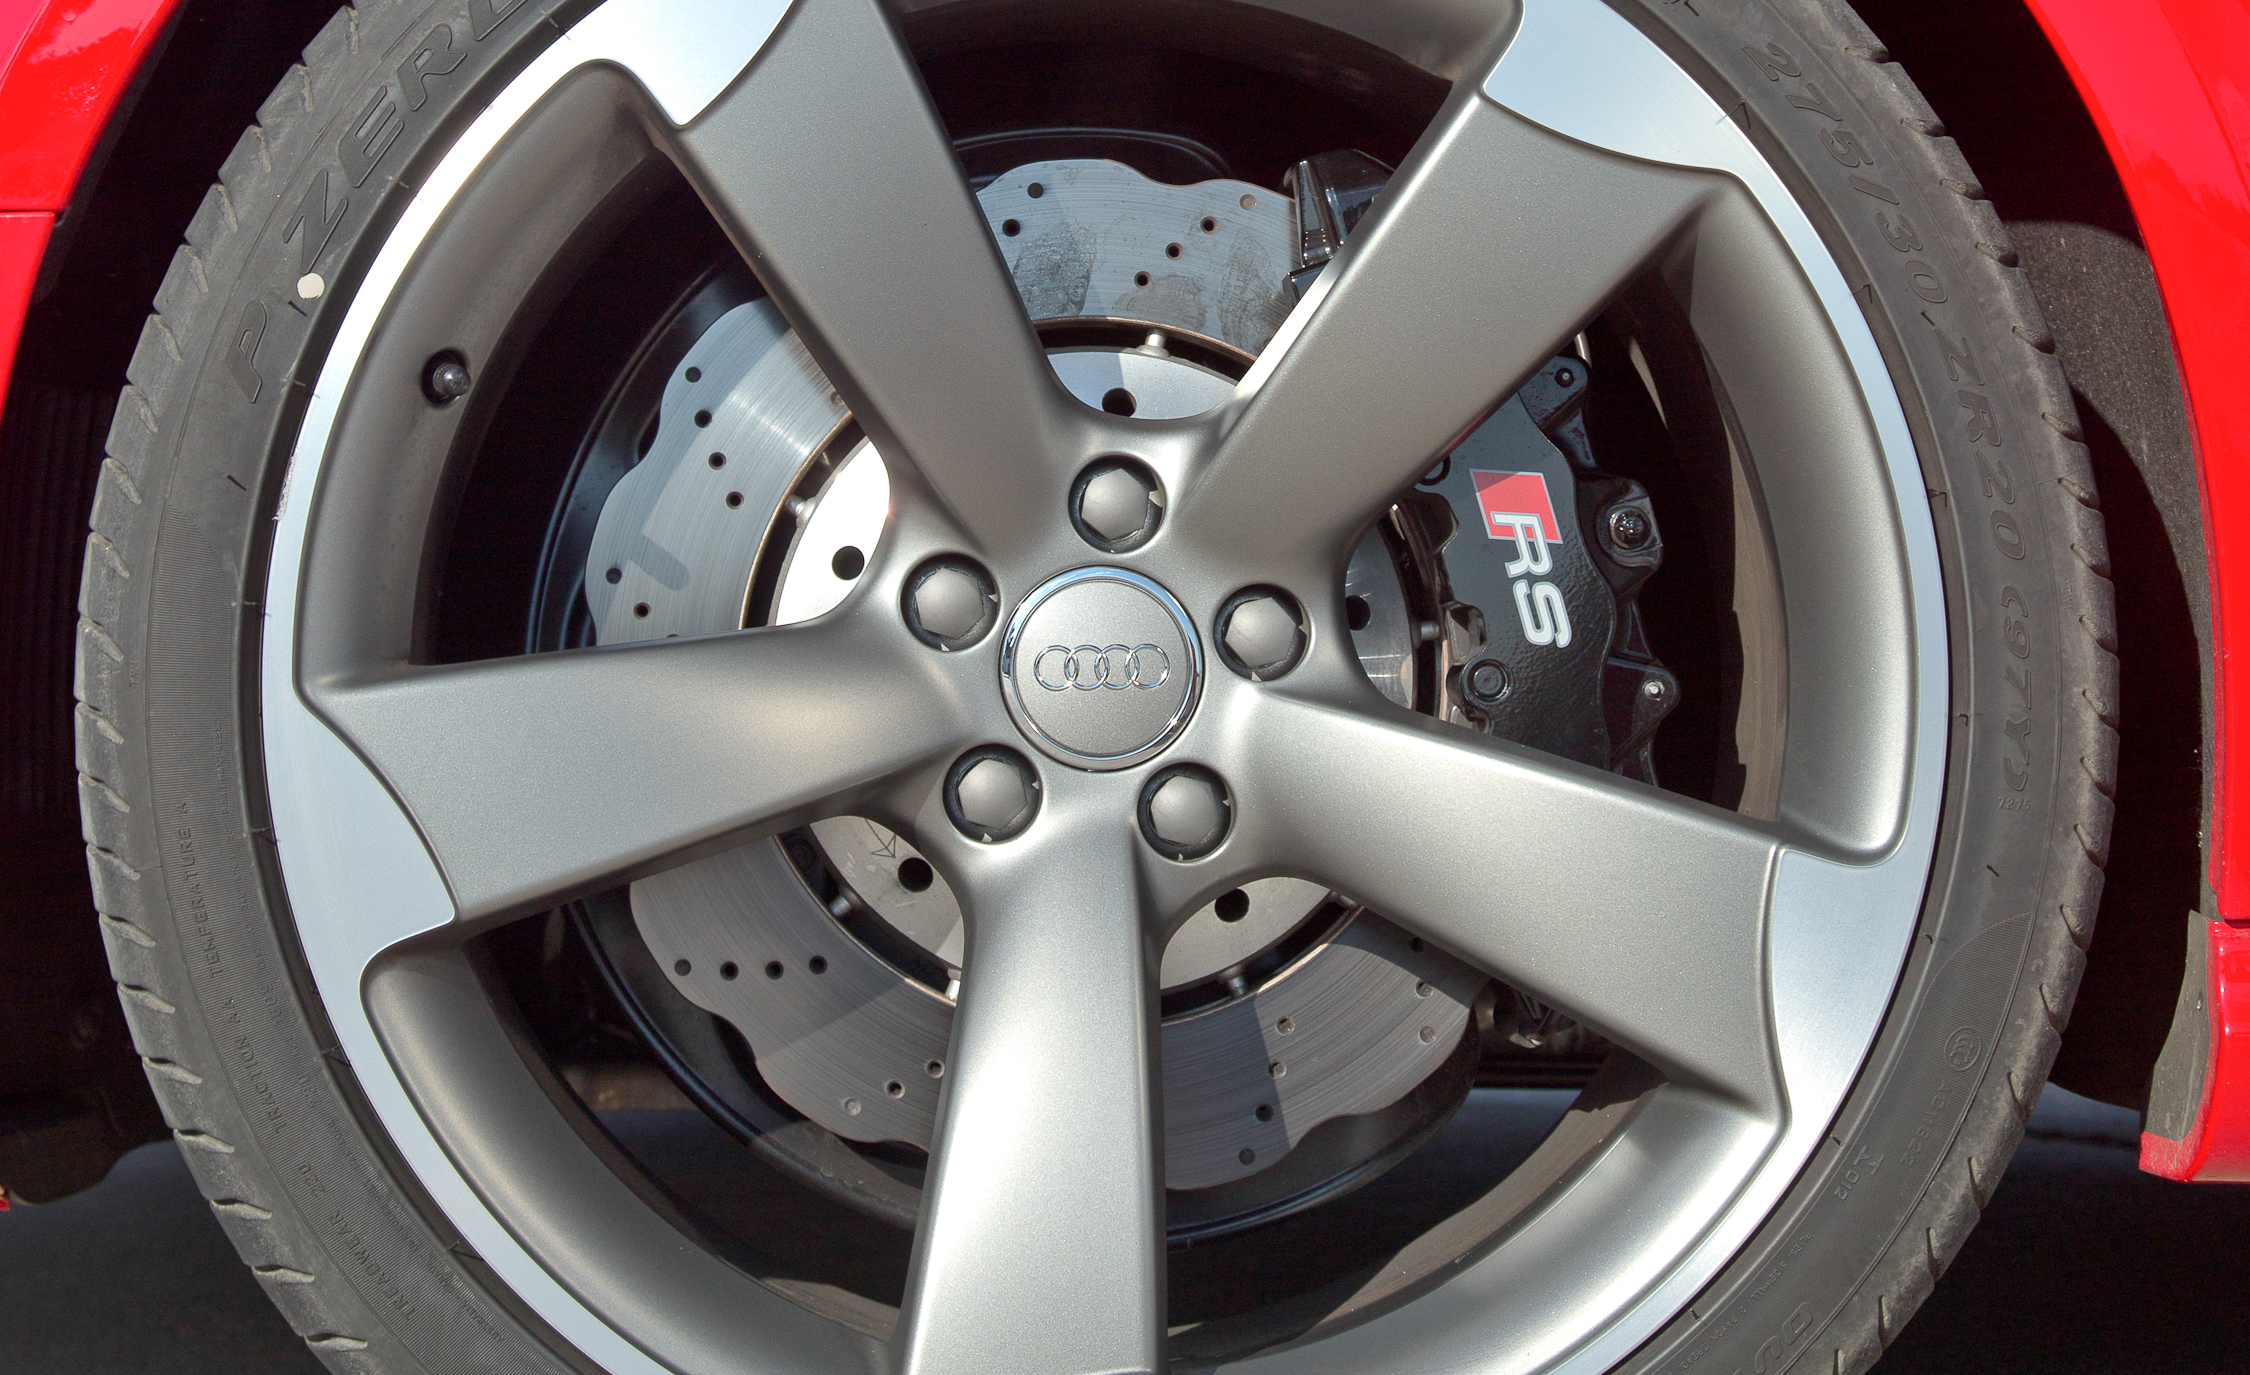 2013 Audi RS 5 Exterior View Wheel Break Caliper And Velg (View 40 of 41)